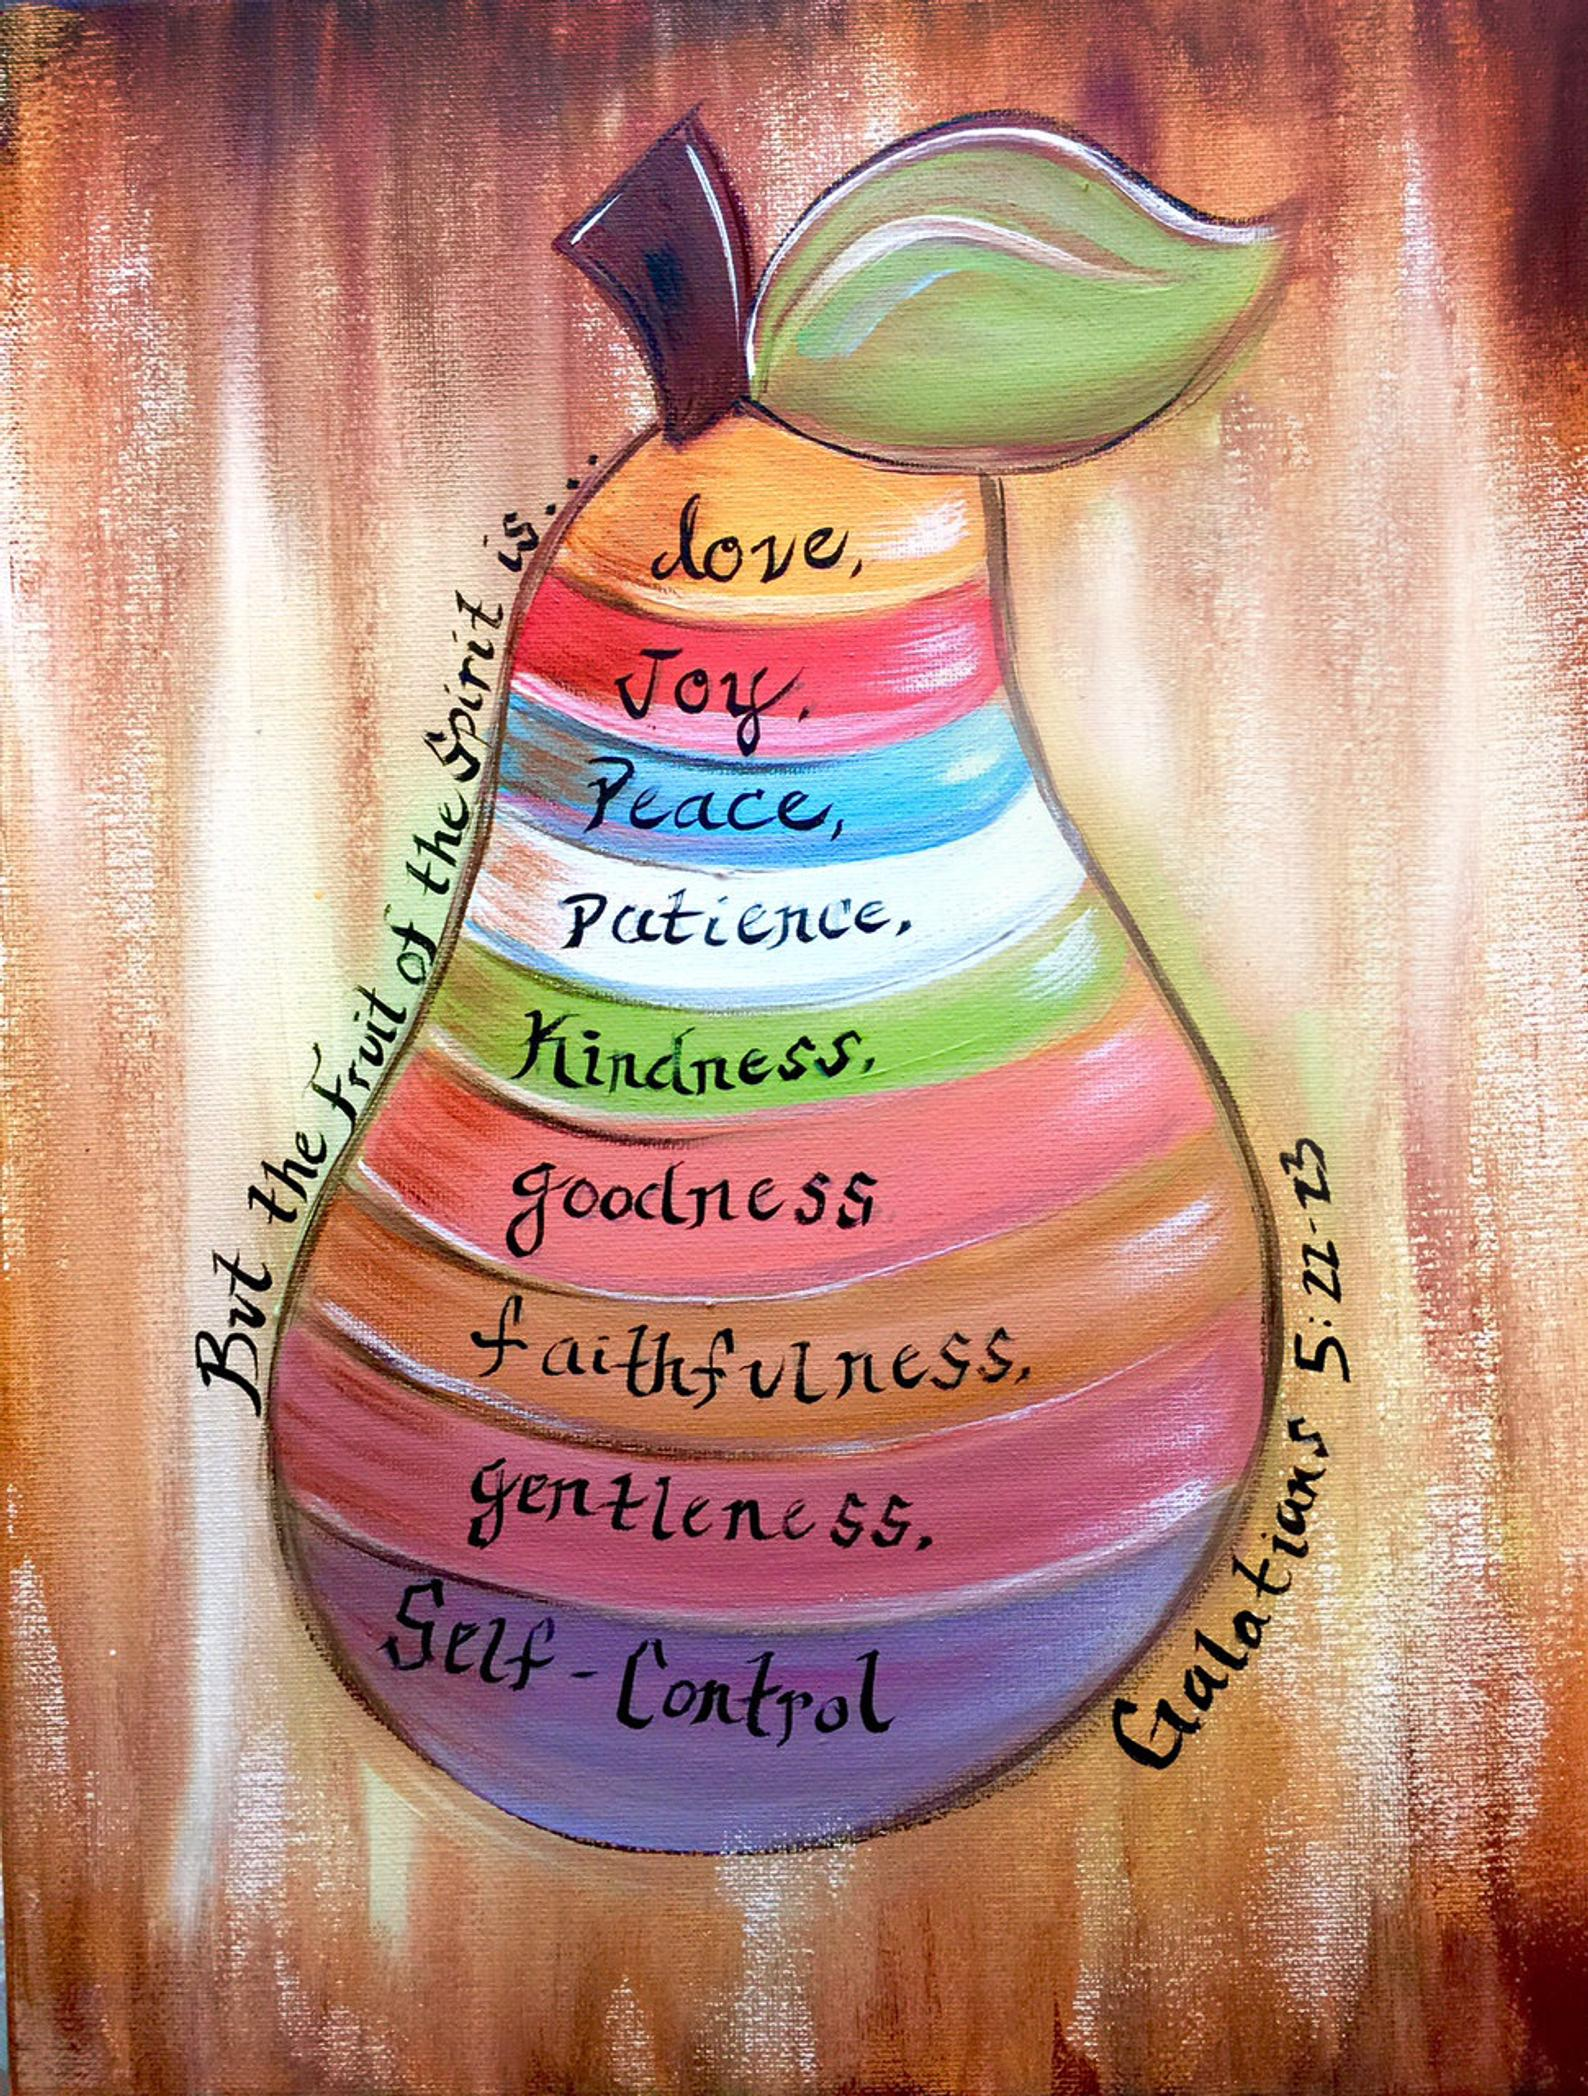 The fruit of the spirit painting, colorfully hand painted by Sheila A. Smith